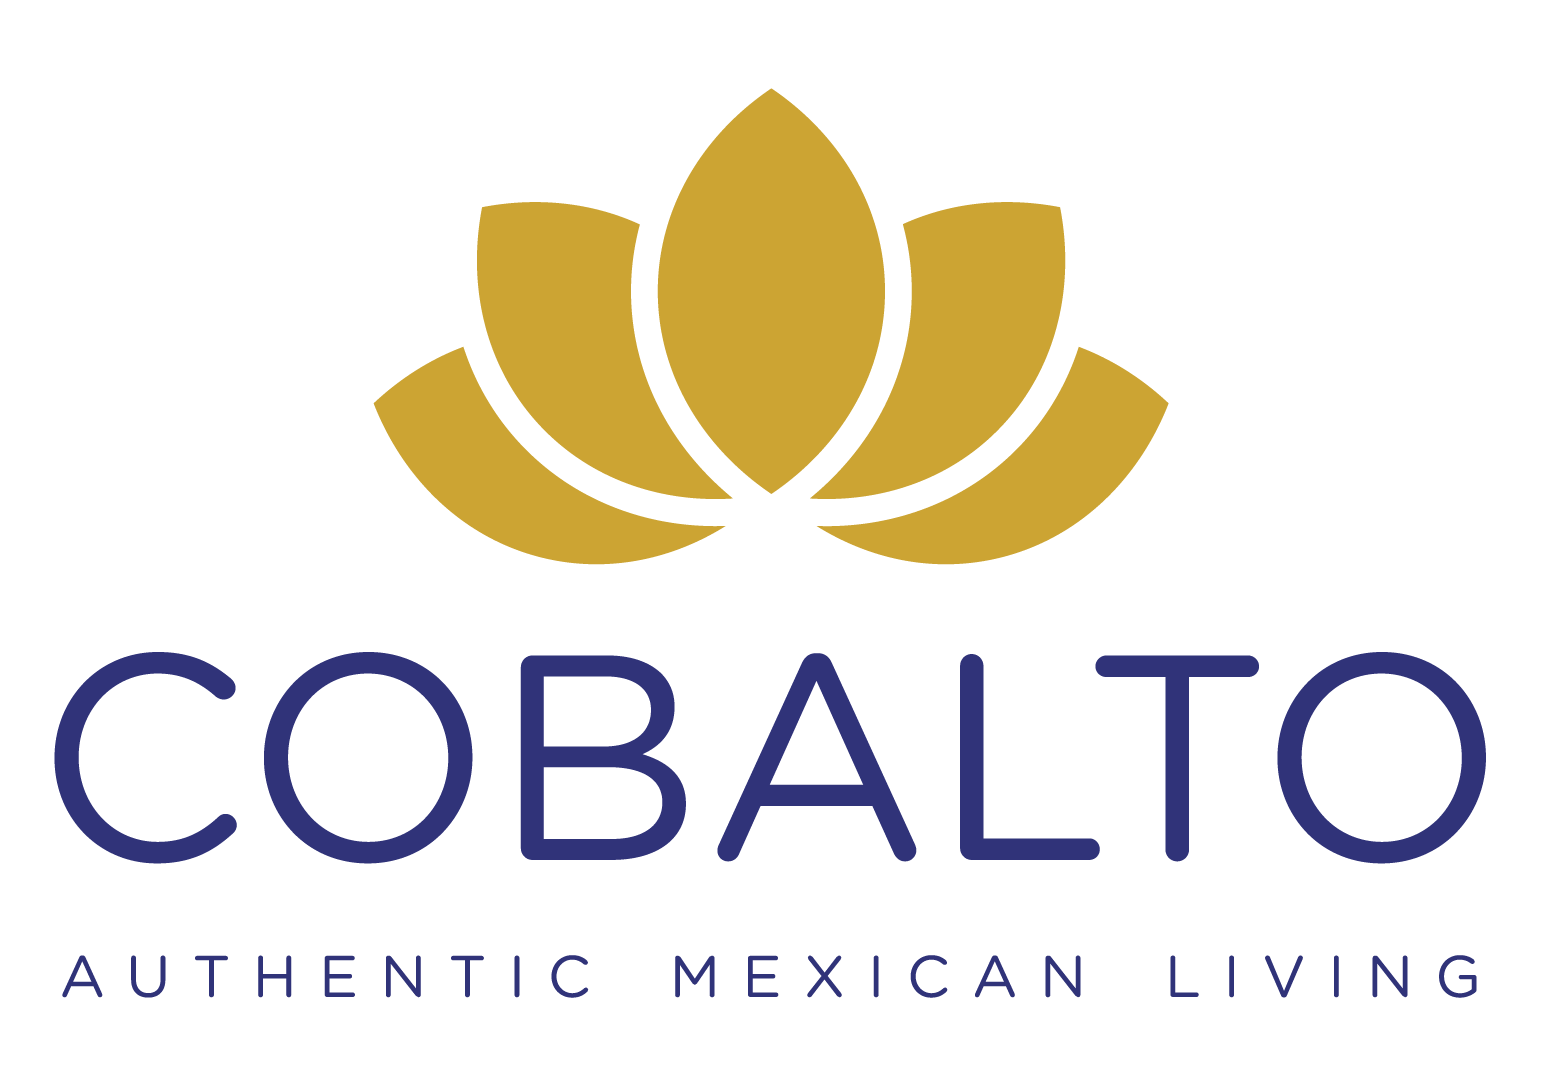 COBALTO - Authentic Mexican Living